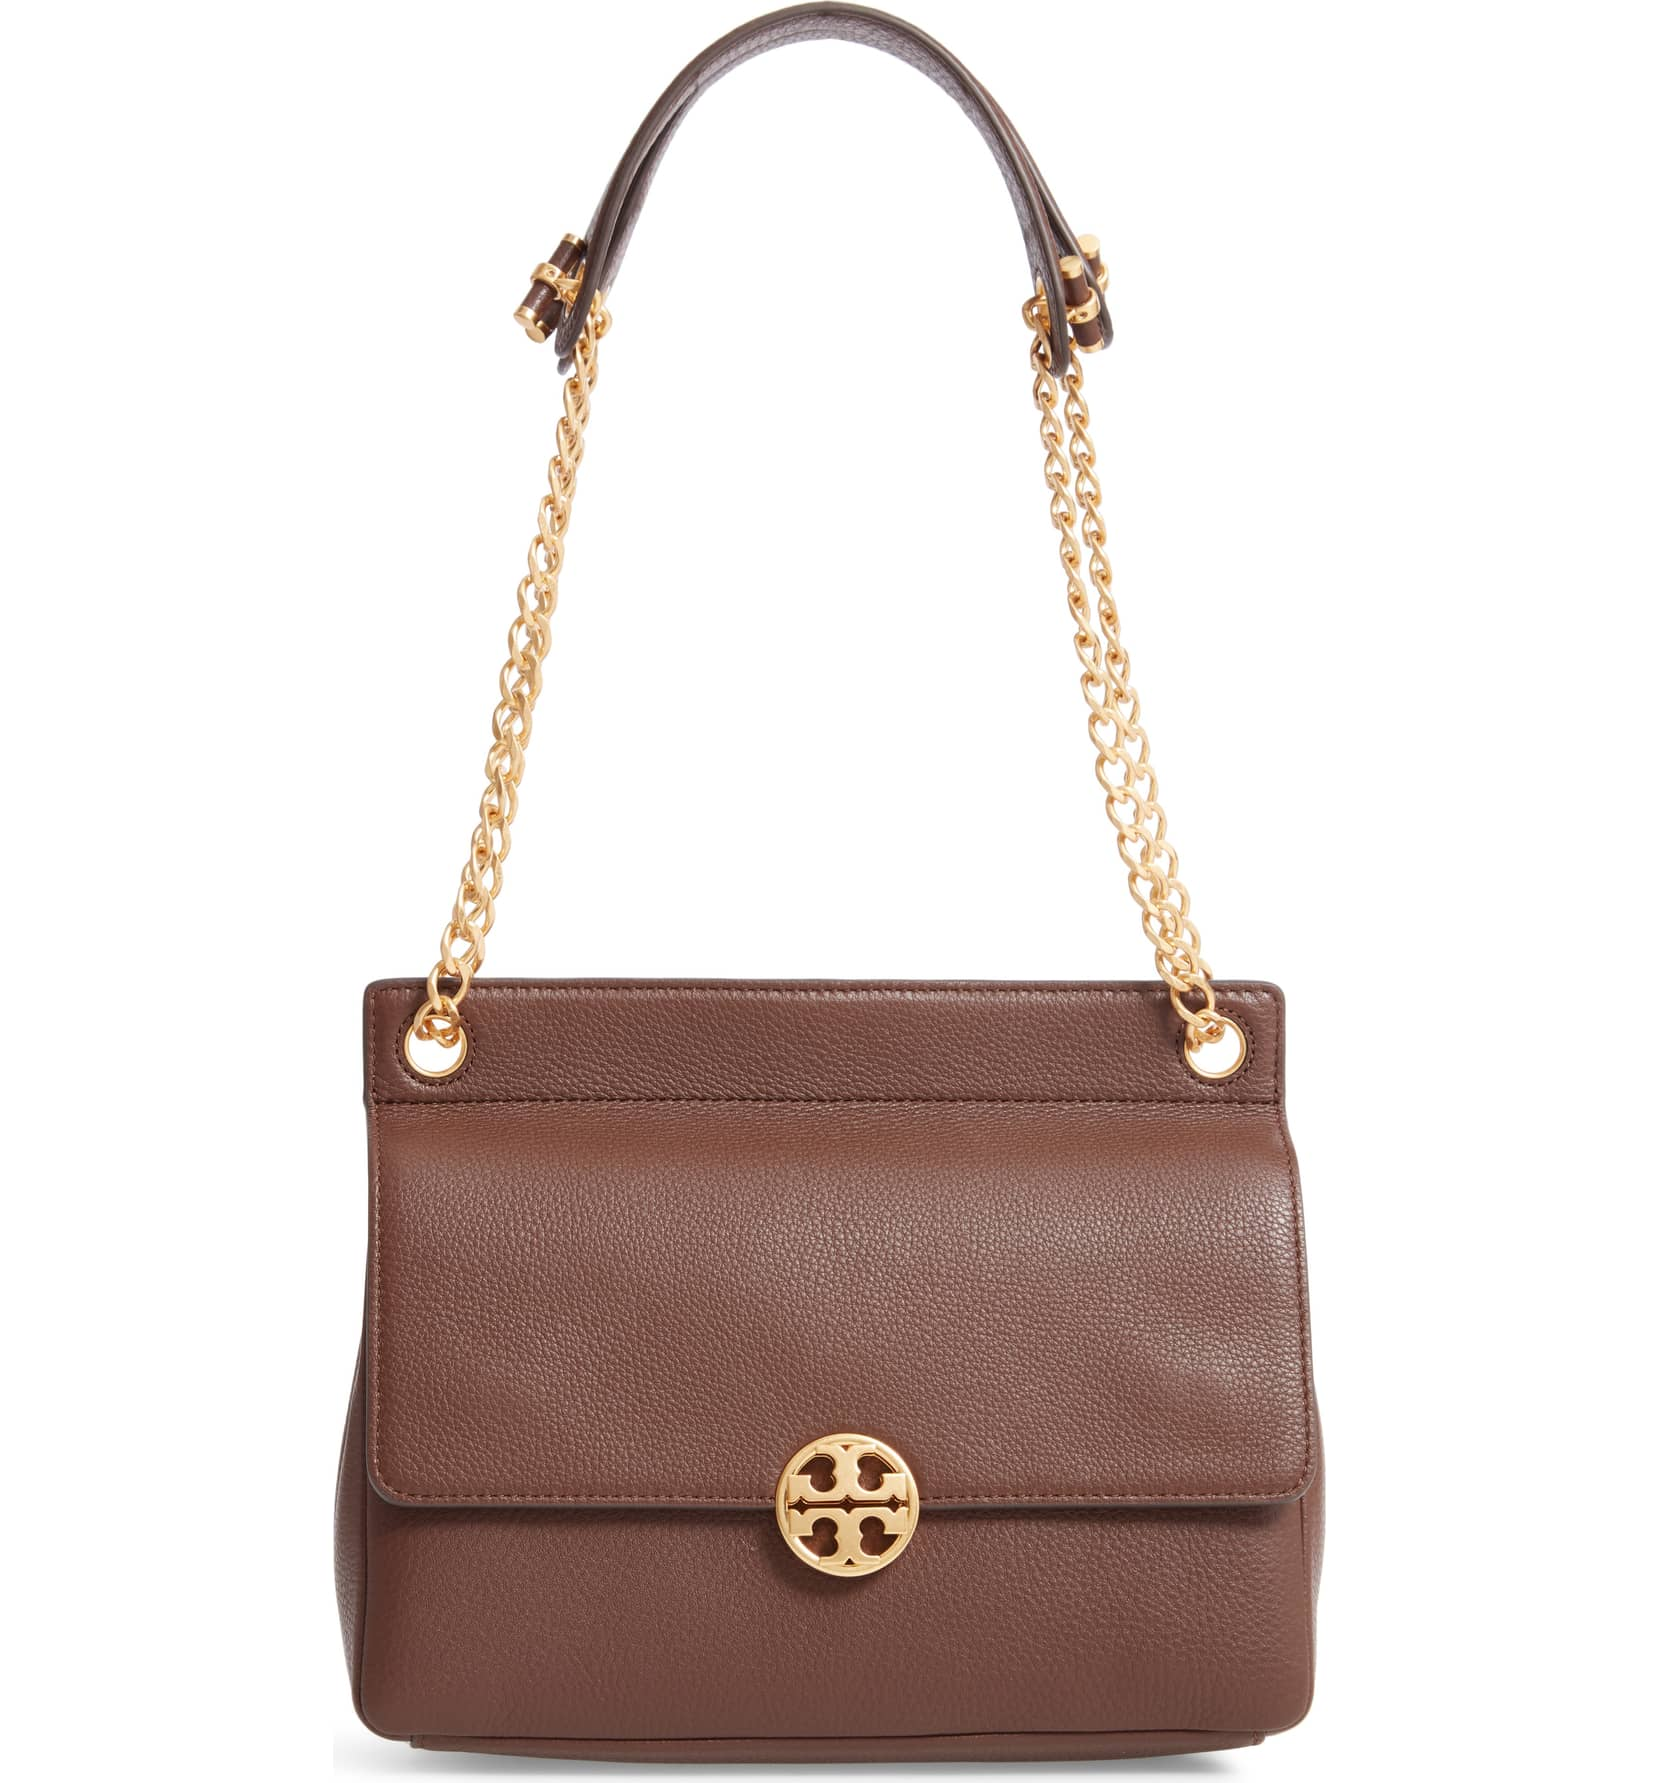 tory burch chelsea flap leather shoulder bag in a brown color with gold hardware